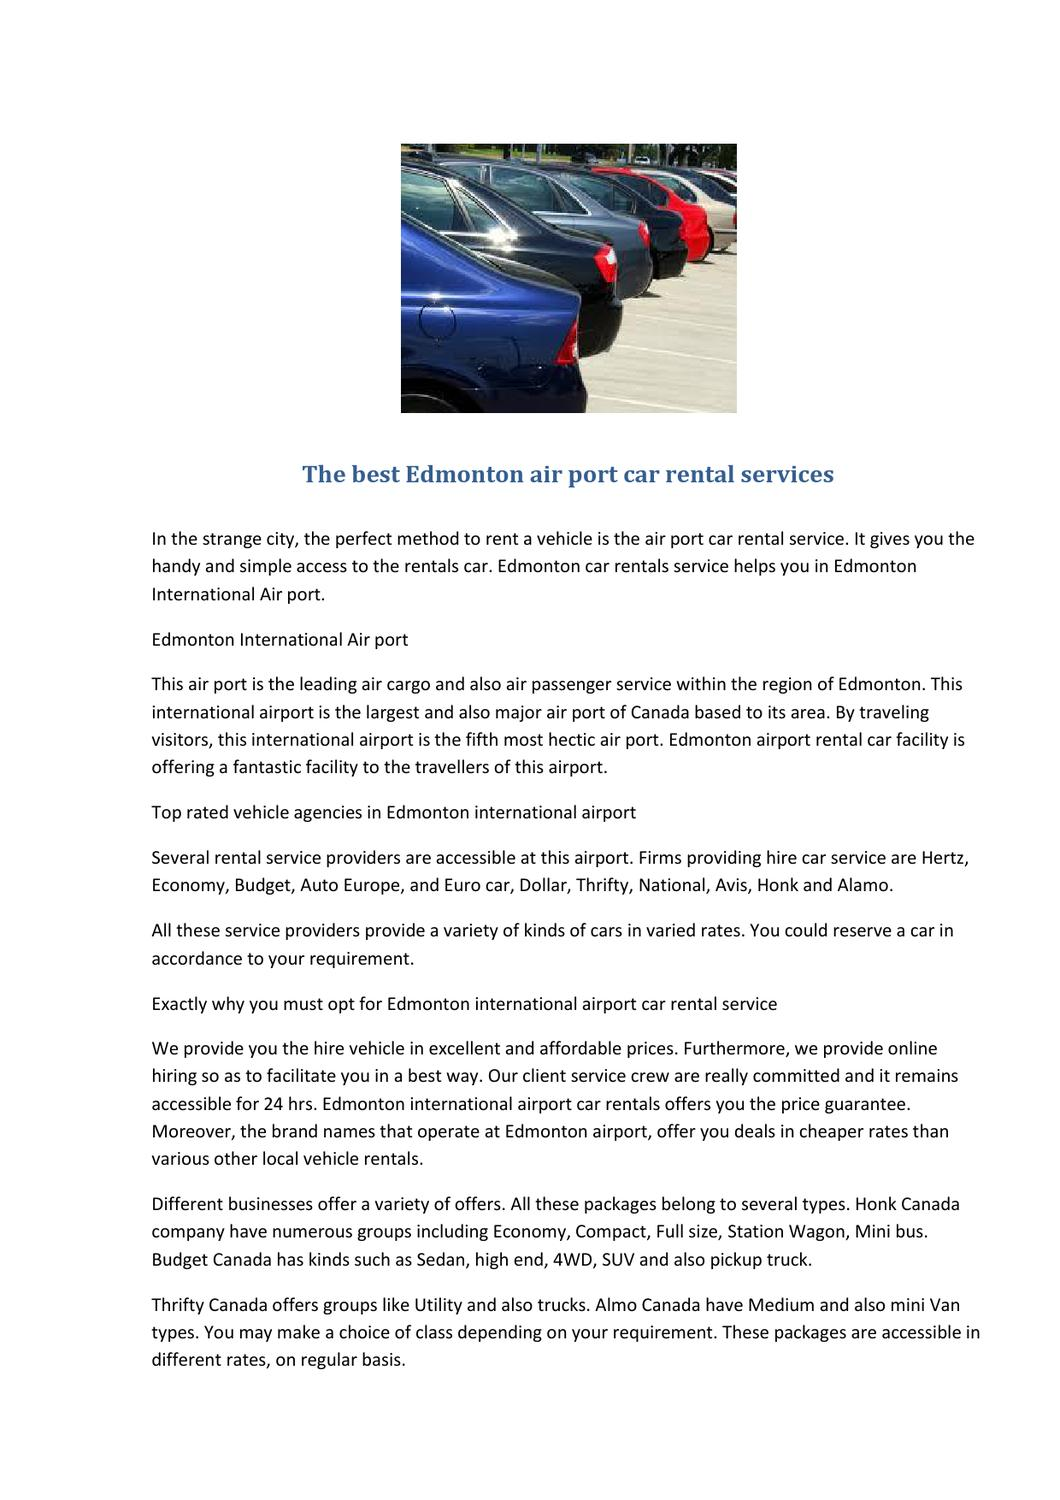 The Perfect Edmonton International Airport Hire Car Services By